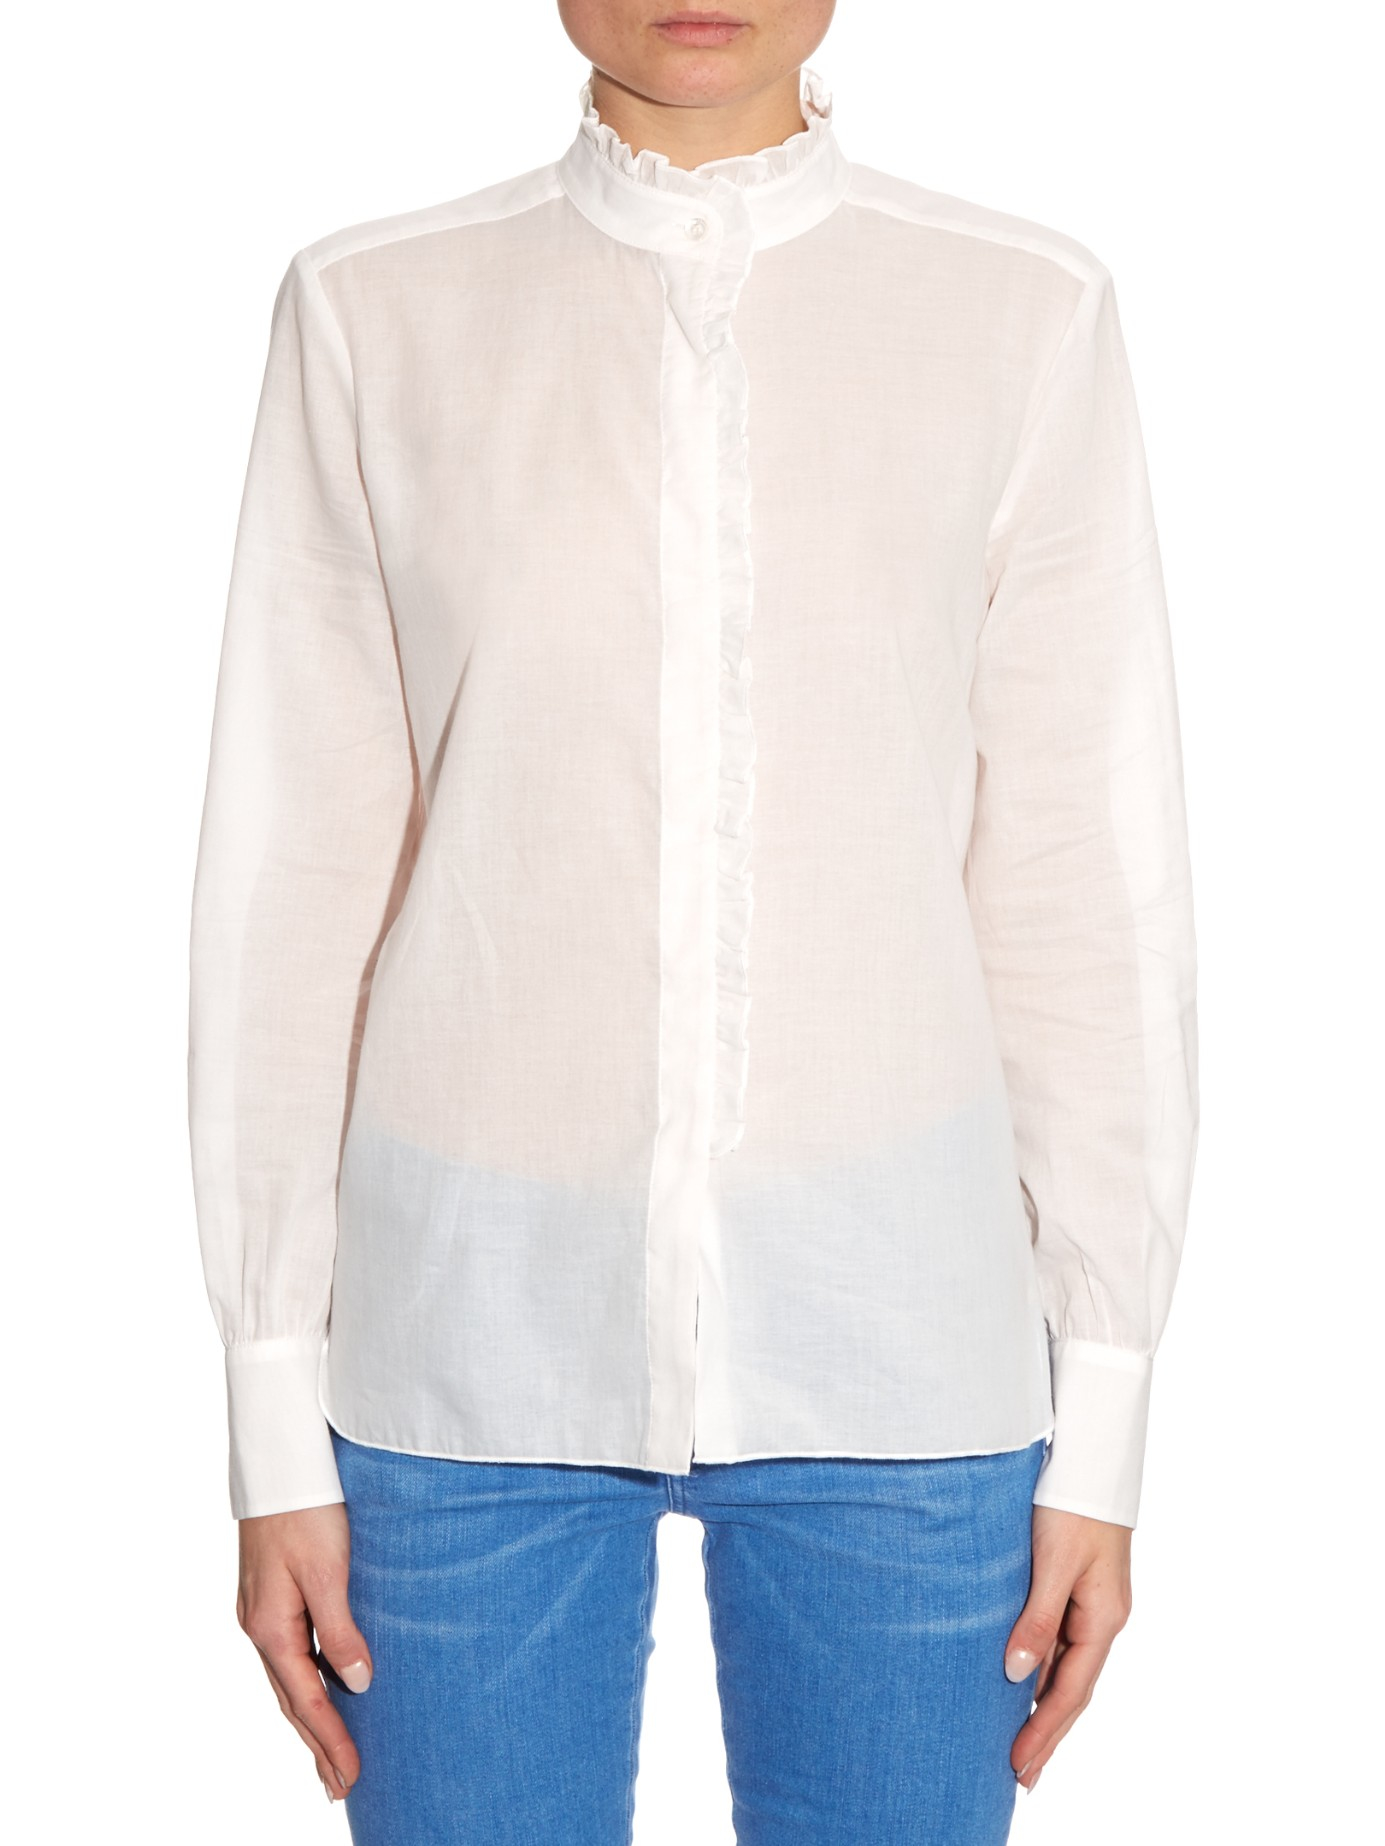 2b976f6167550c See By Chloé High-neck Ruffle-trimmed Blouse in White - Lyst